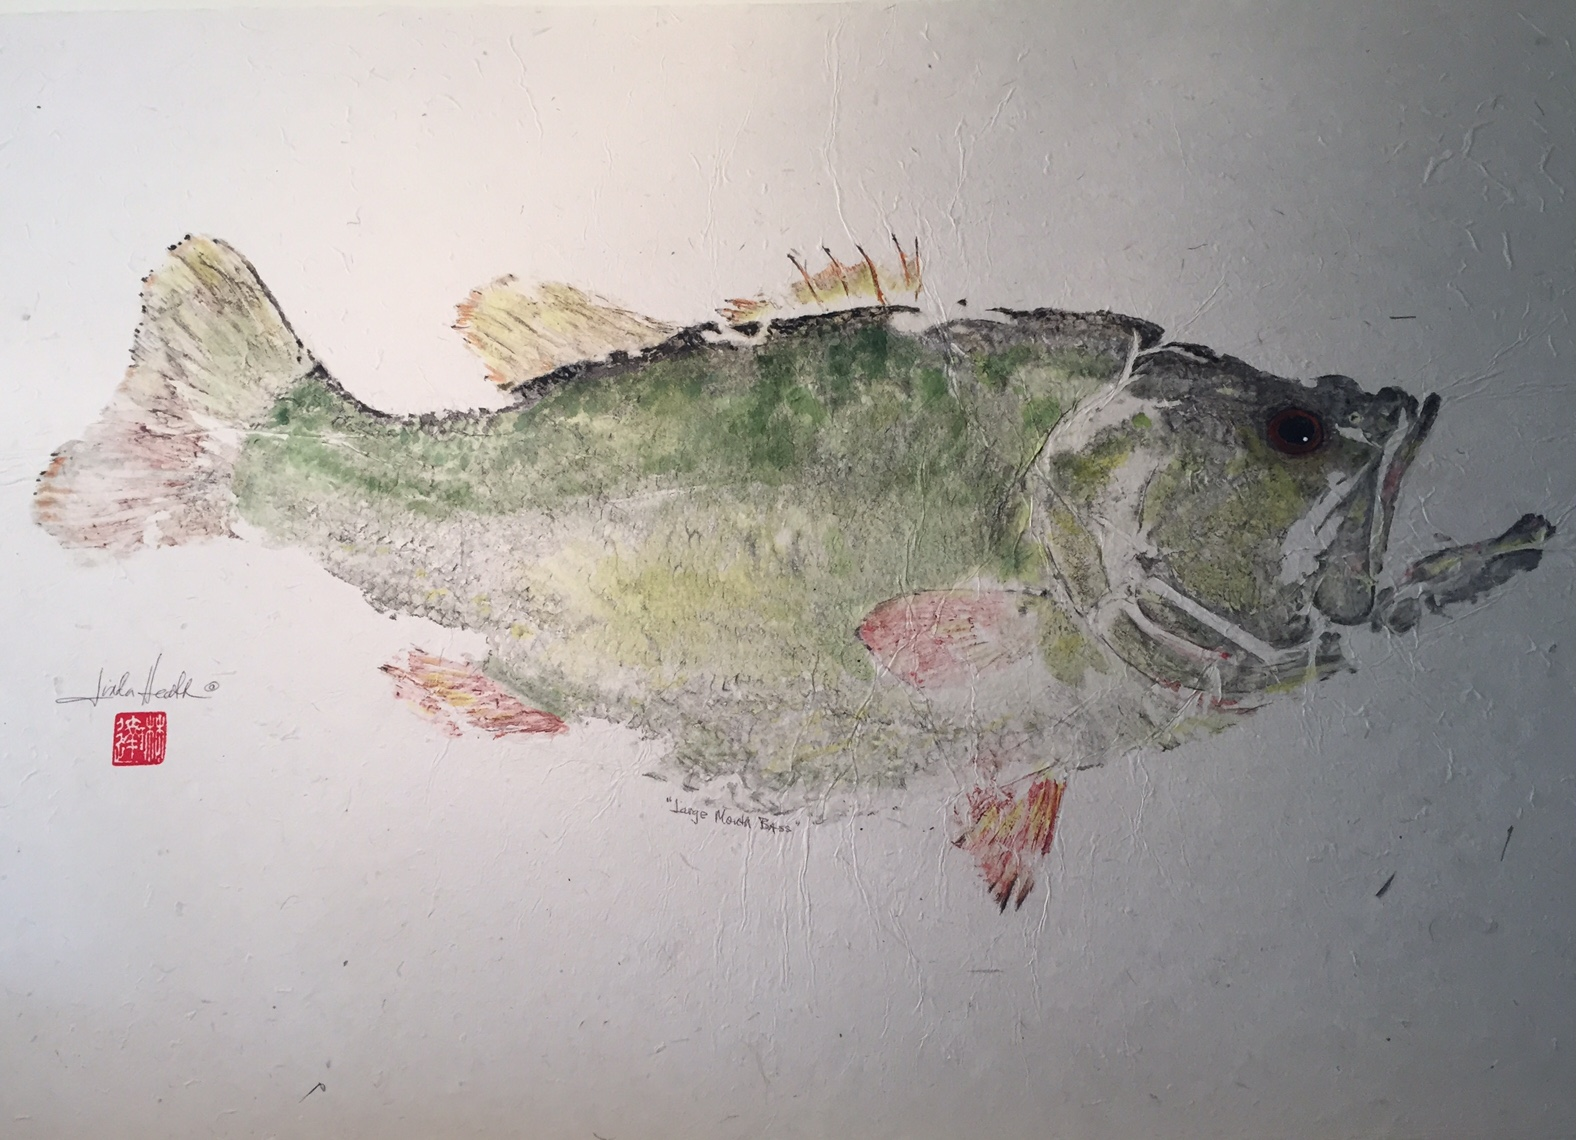 Original Large Mouth Bass by Linda Heath